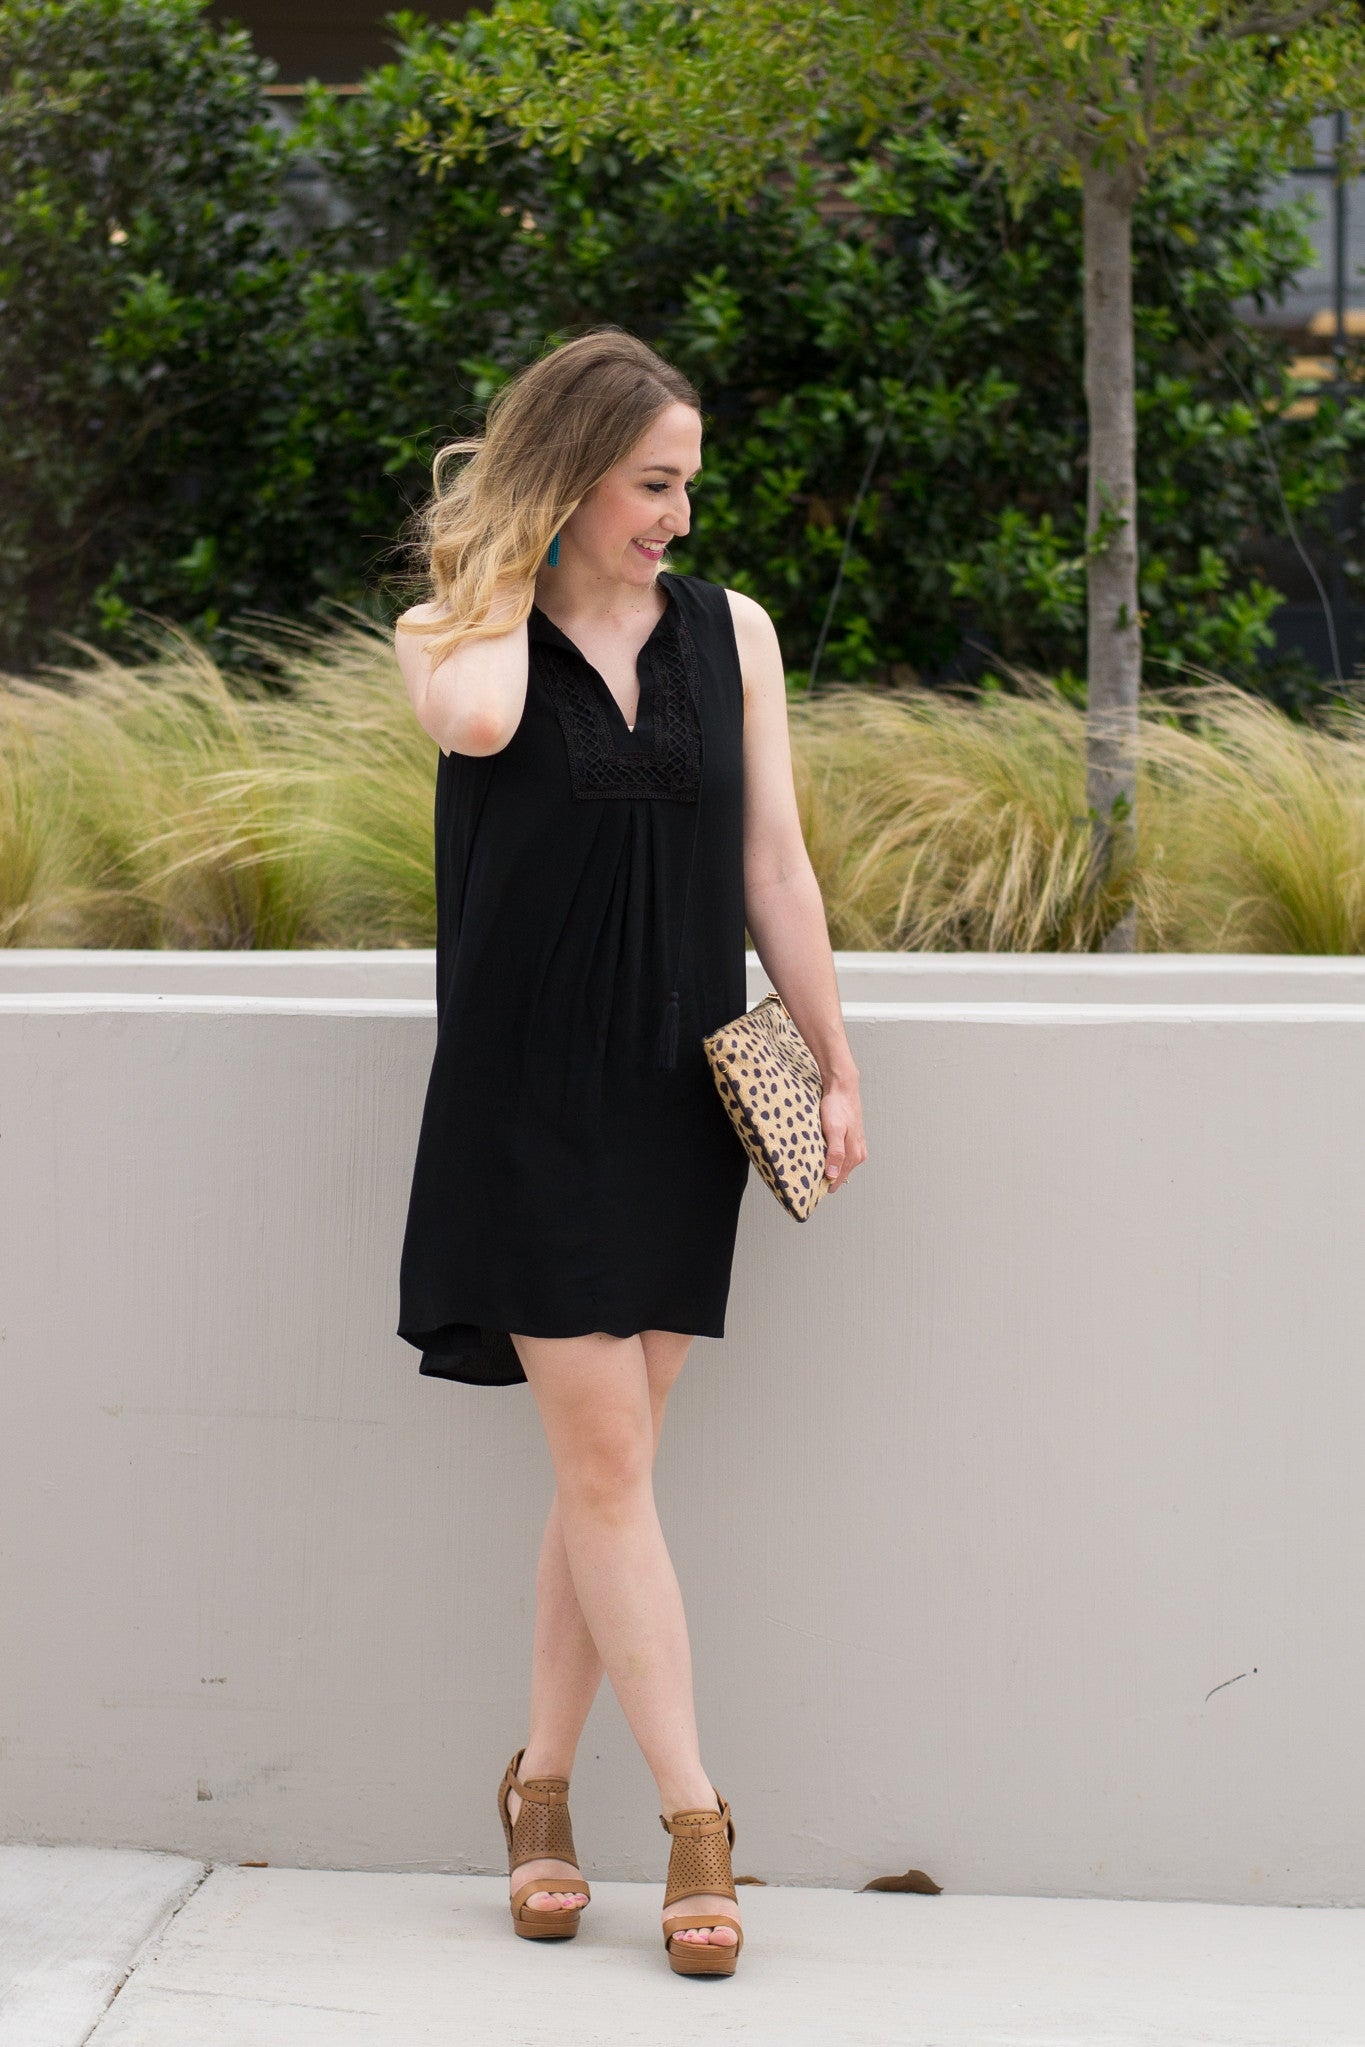 Sleeveless Black Summer Dress with Tassels